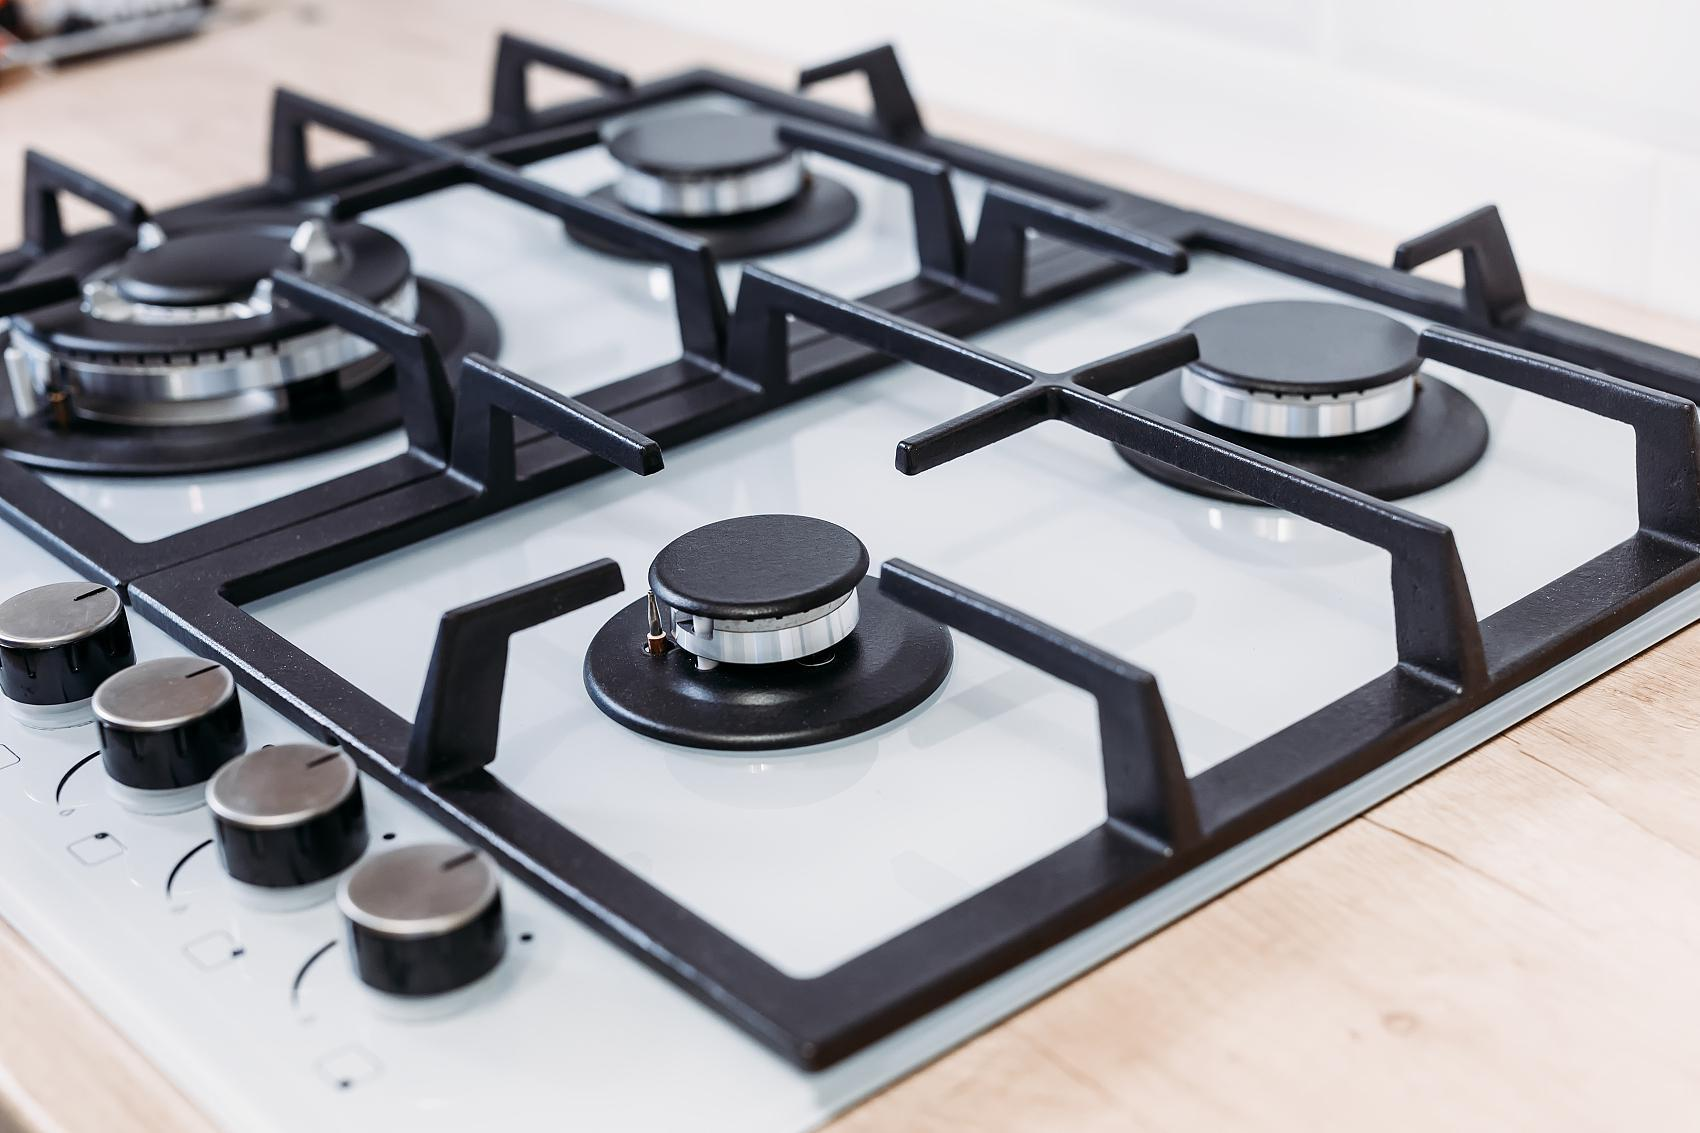 How to install a gas hob?